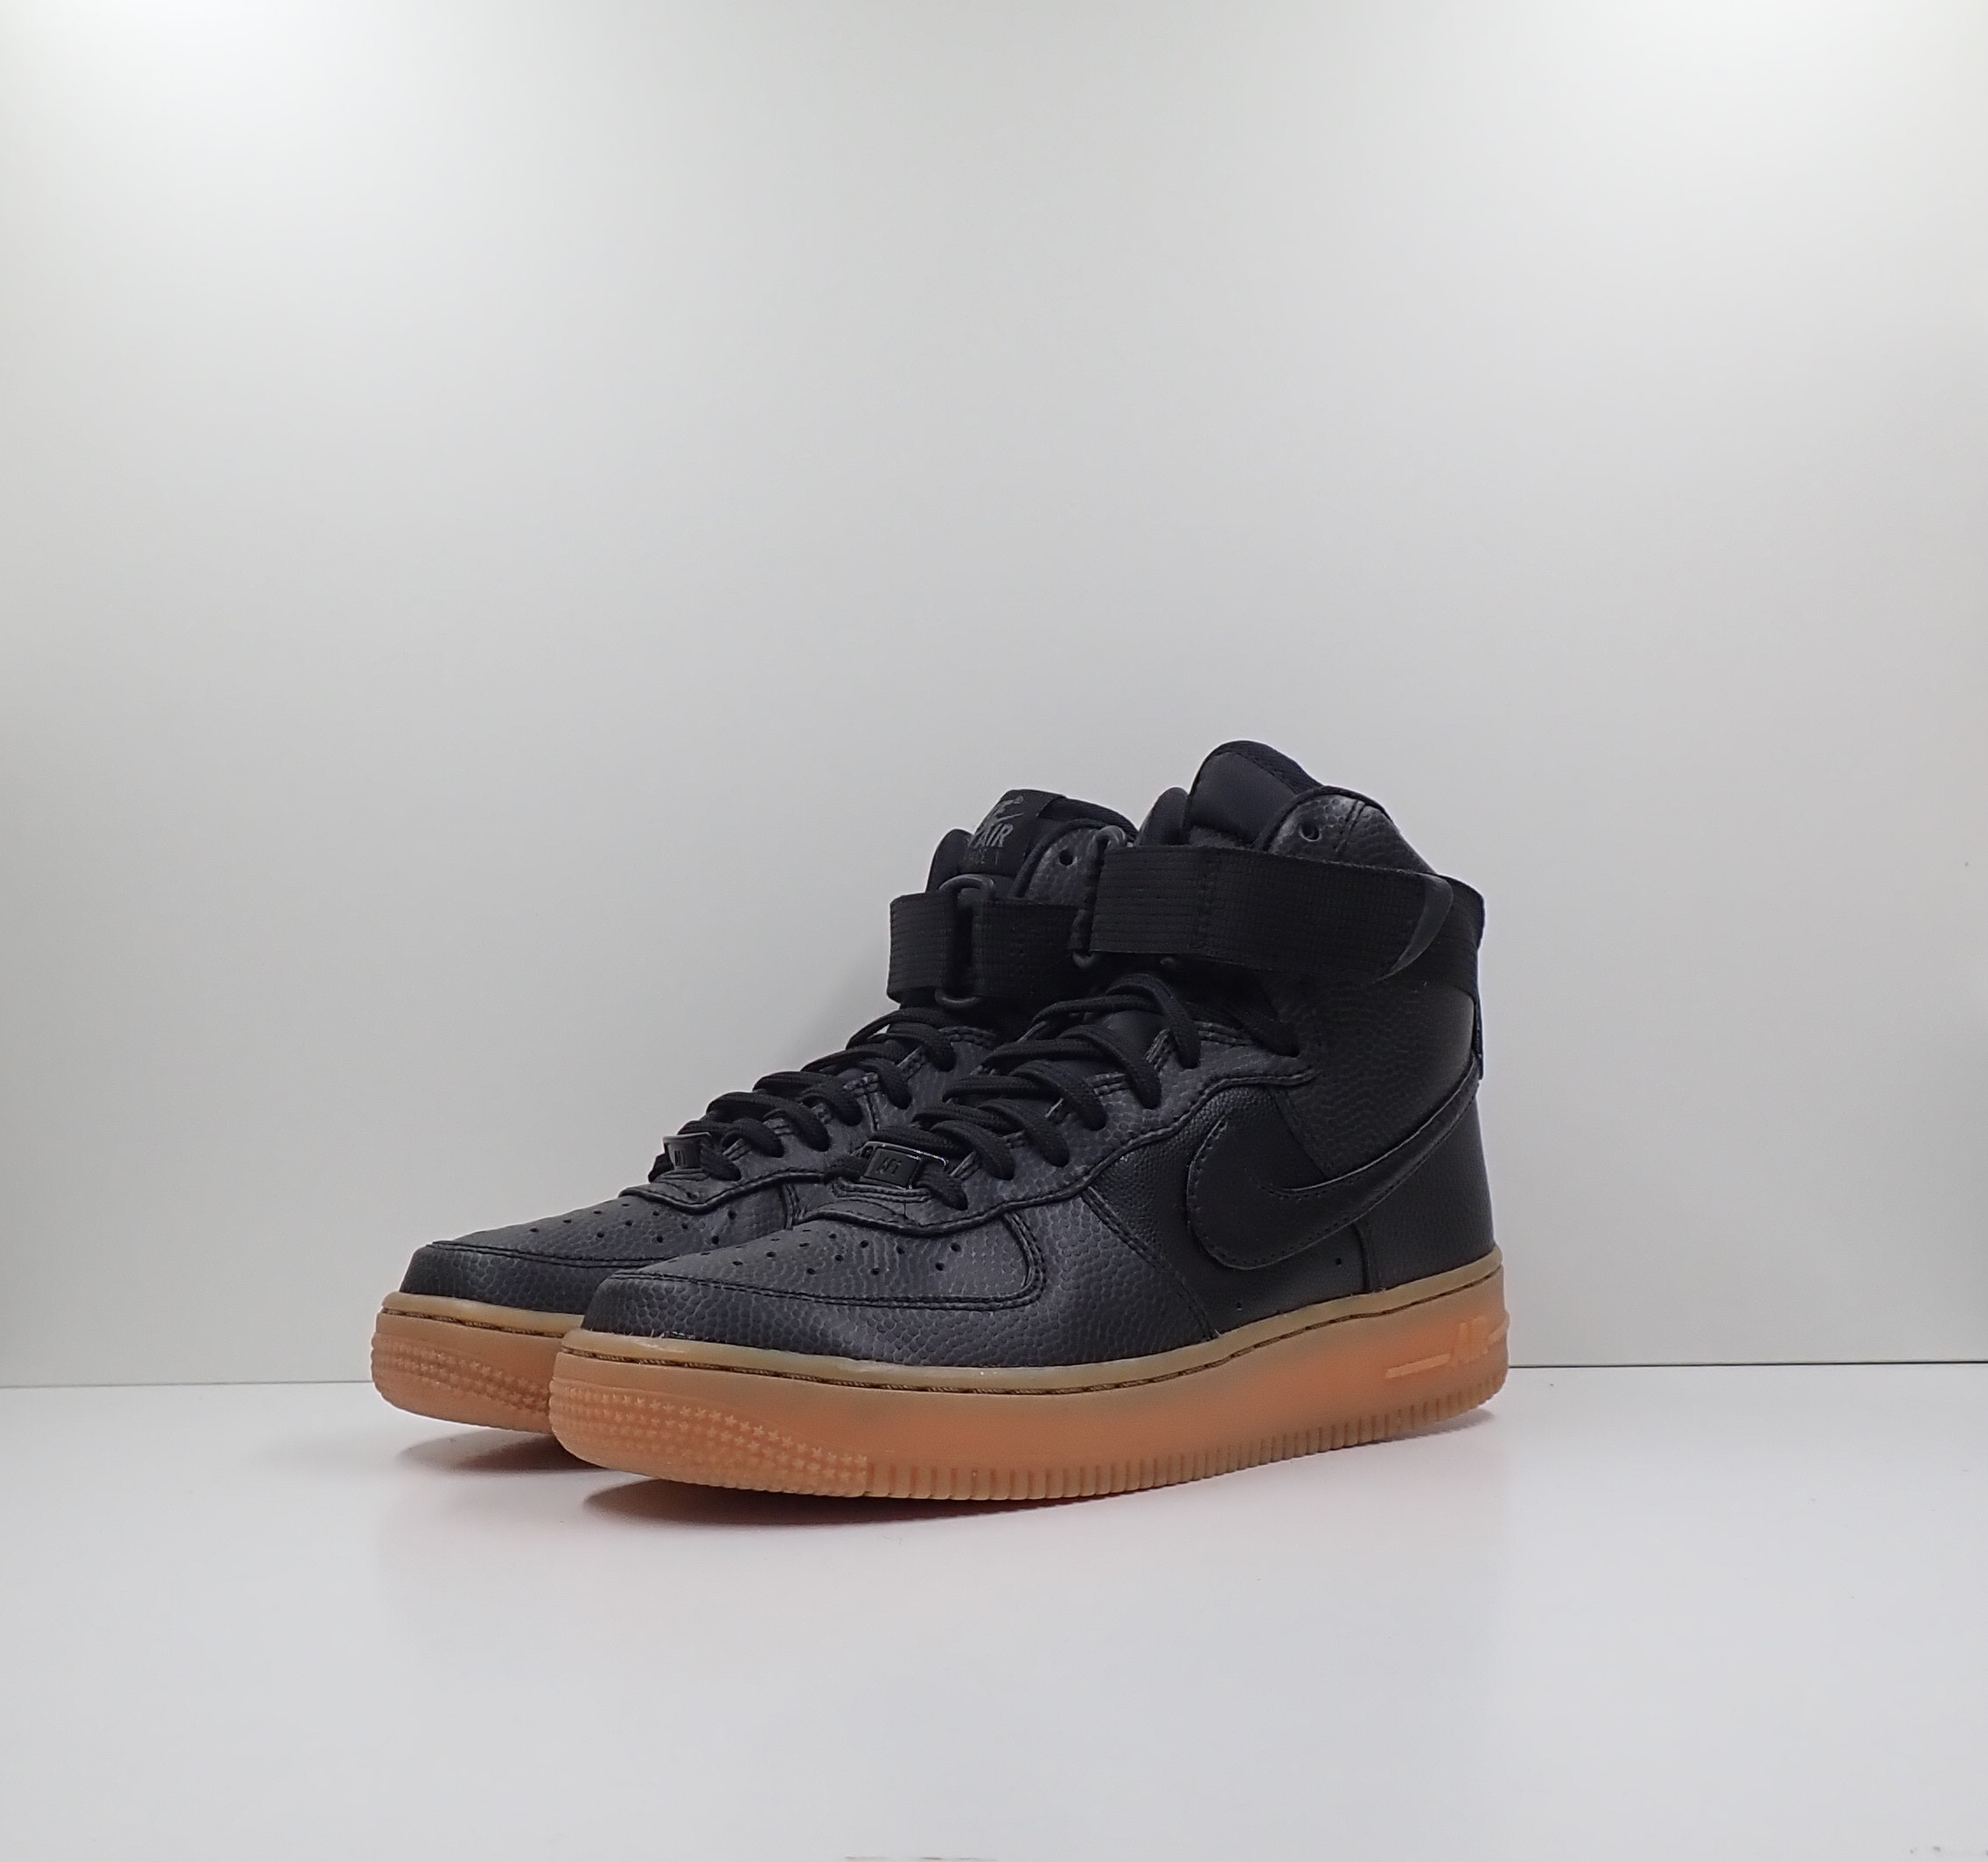 Nike Air Force 1 High Black Dark Grey Gum (W)